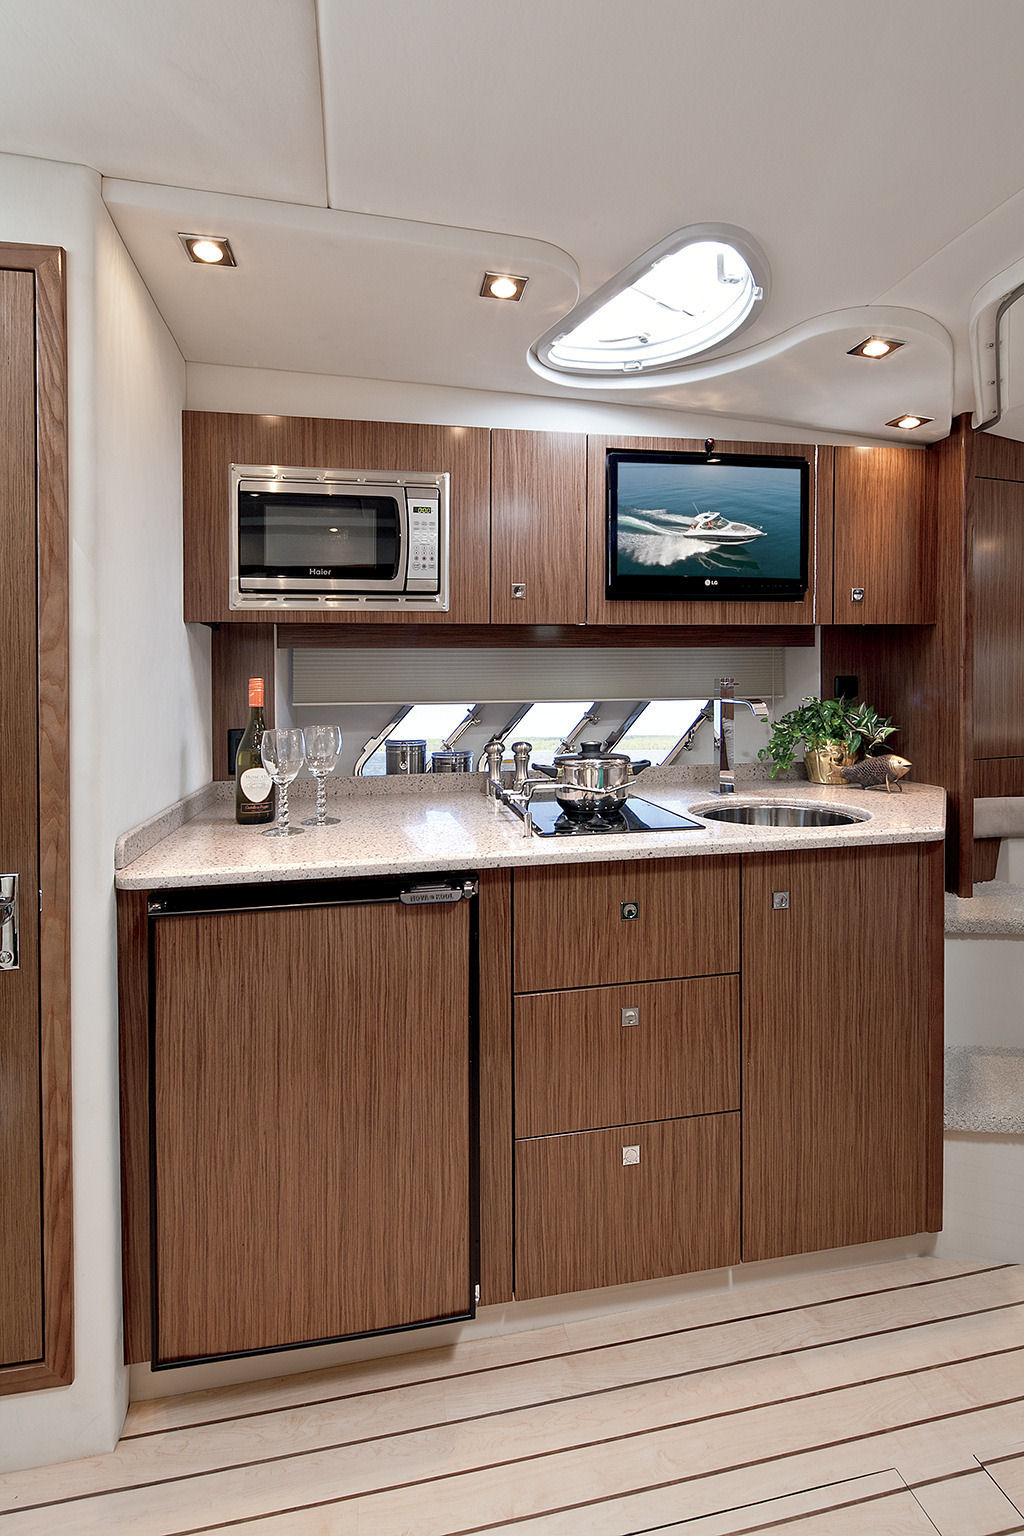 2016 Cruisers Yachts 35 Express Galley for Sale